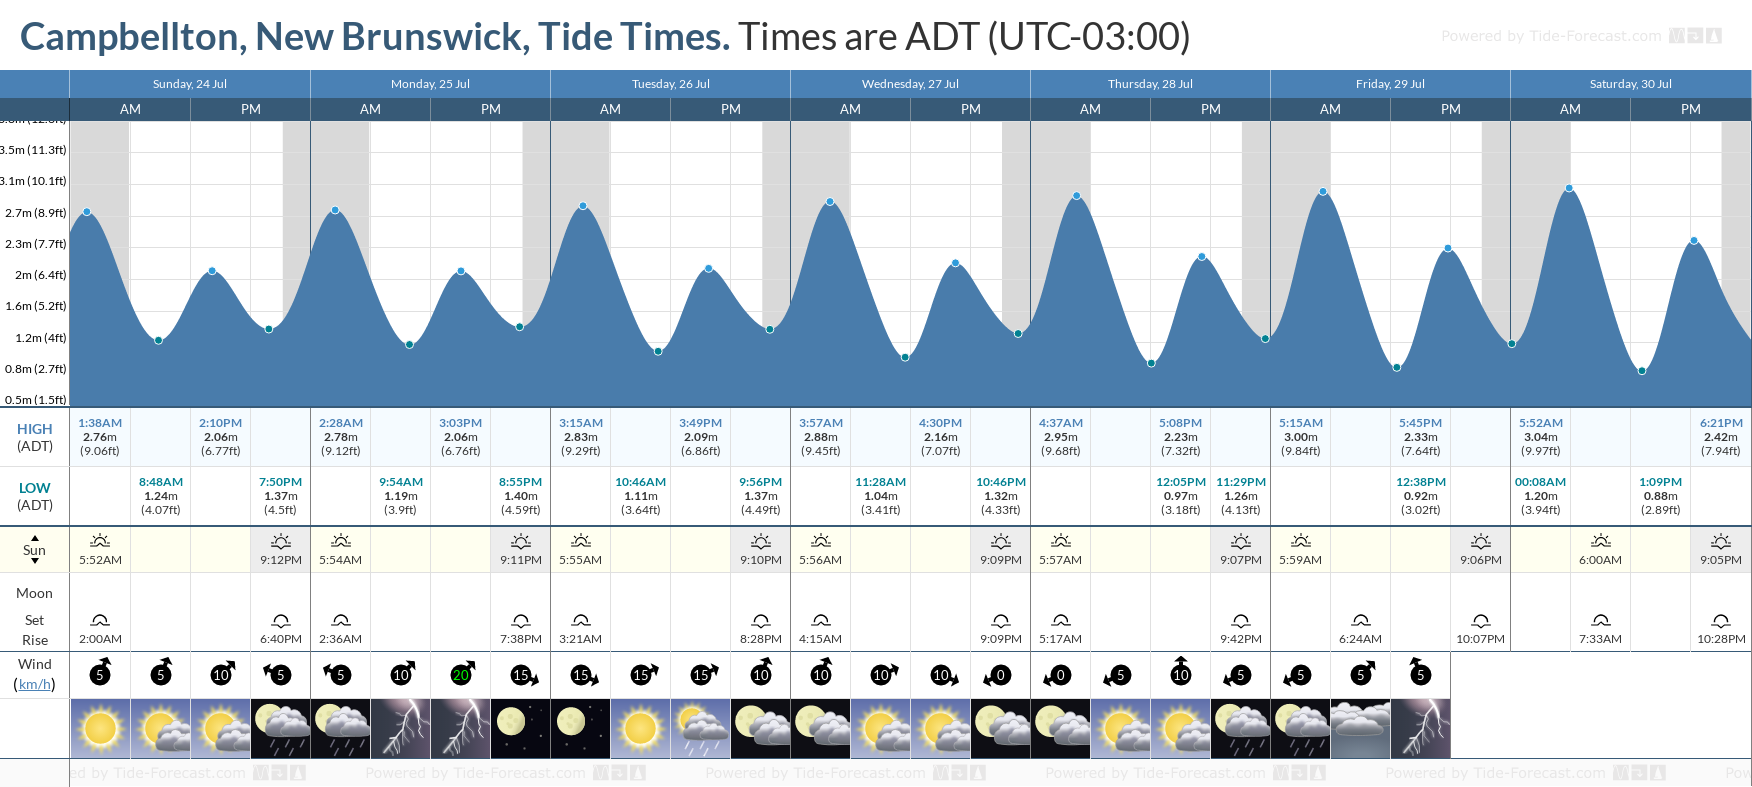 Campbellton, New Brunswick Tide Chart including high and low tide tide times for the next 7 days